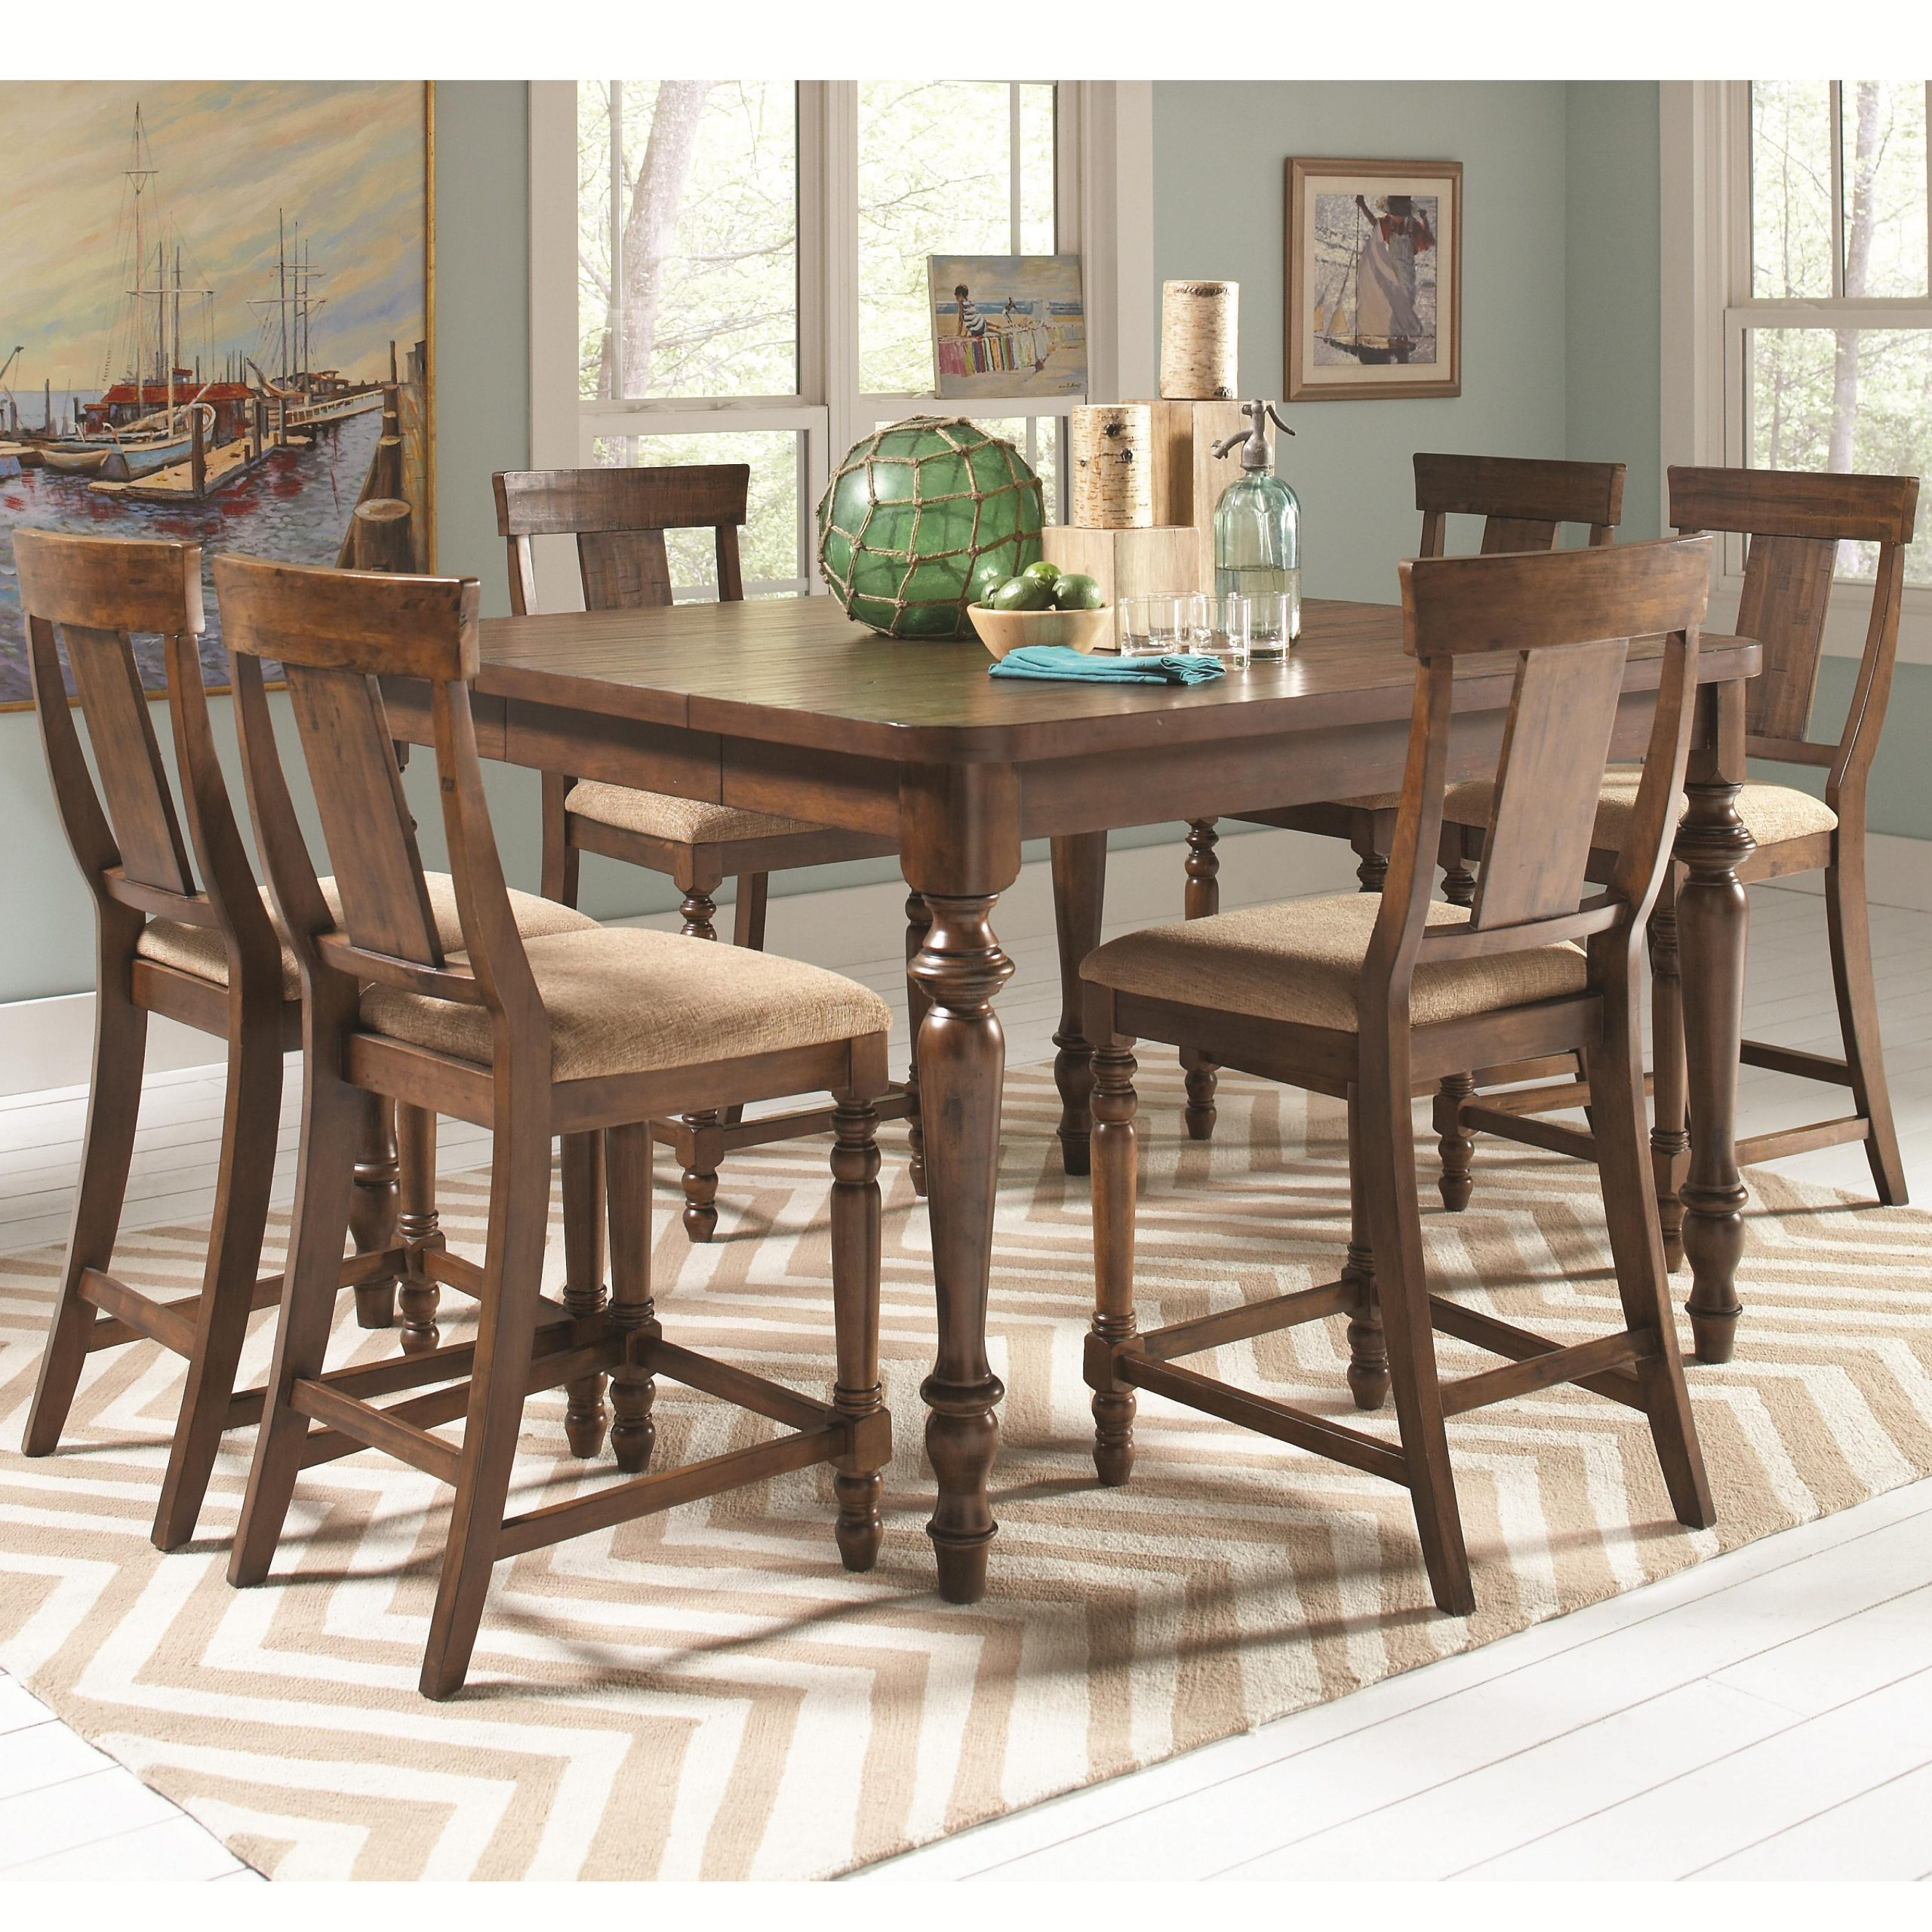 Jonas Counter Height Table With 6 Chairs | Quality Regarding Most Up To Date Counter Height Dining Tables (View 14 of 15)